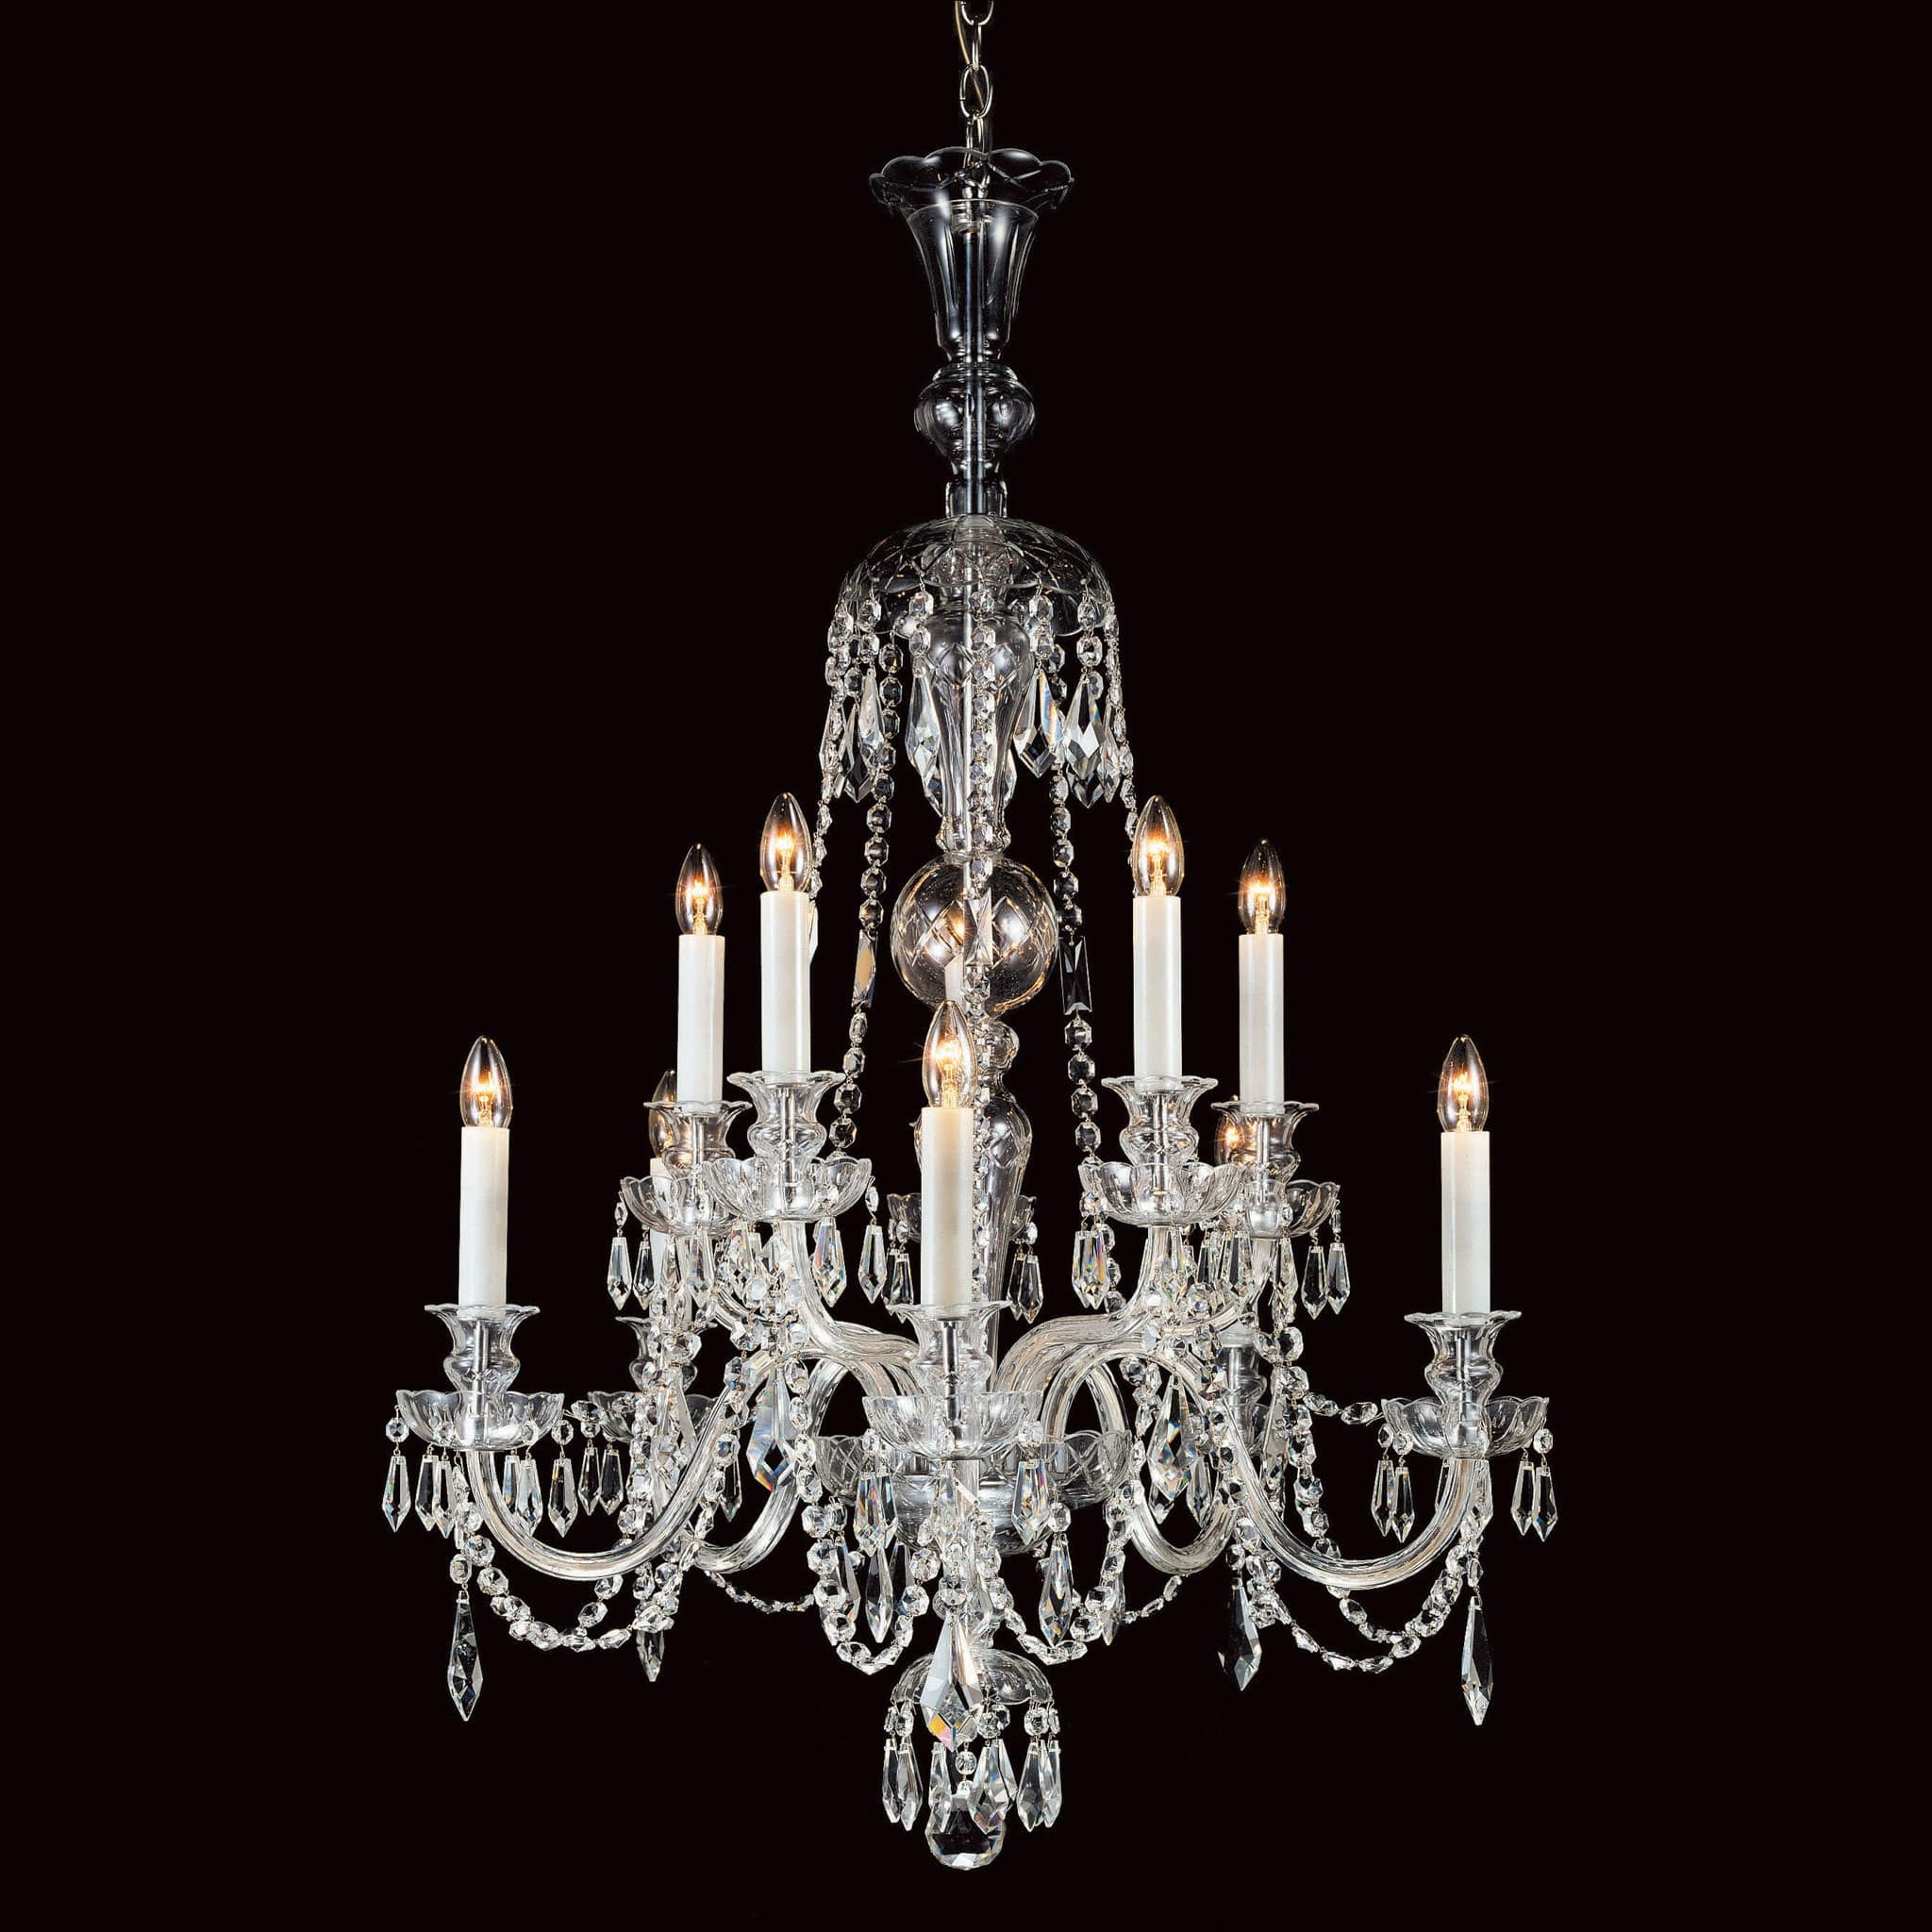 Impex most 10 light georgian lead crystal chandelier chandelier shack impex most 10 light georgian lead crystal chandelier cb12525110 aloadofball Image collections